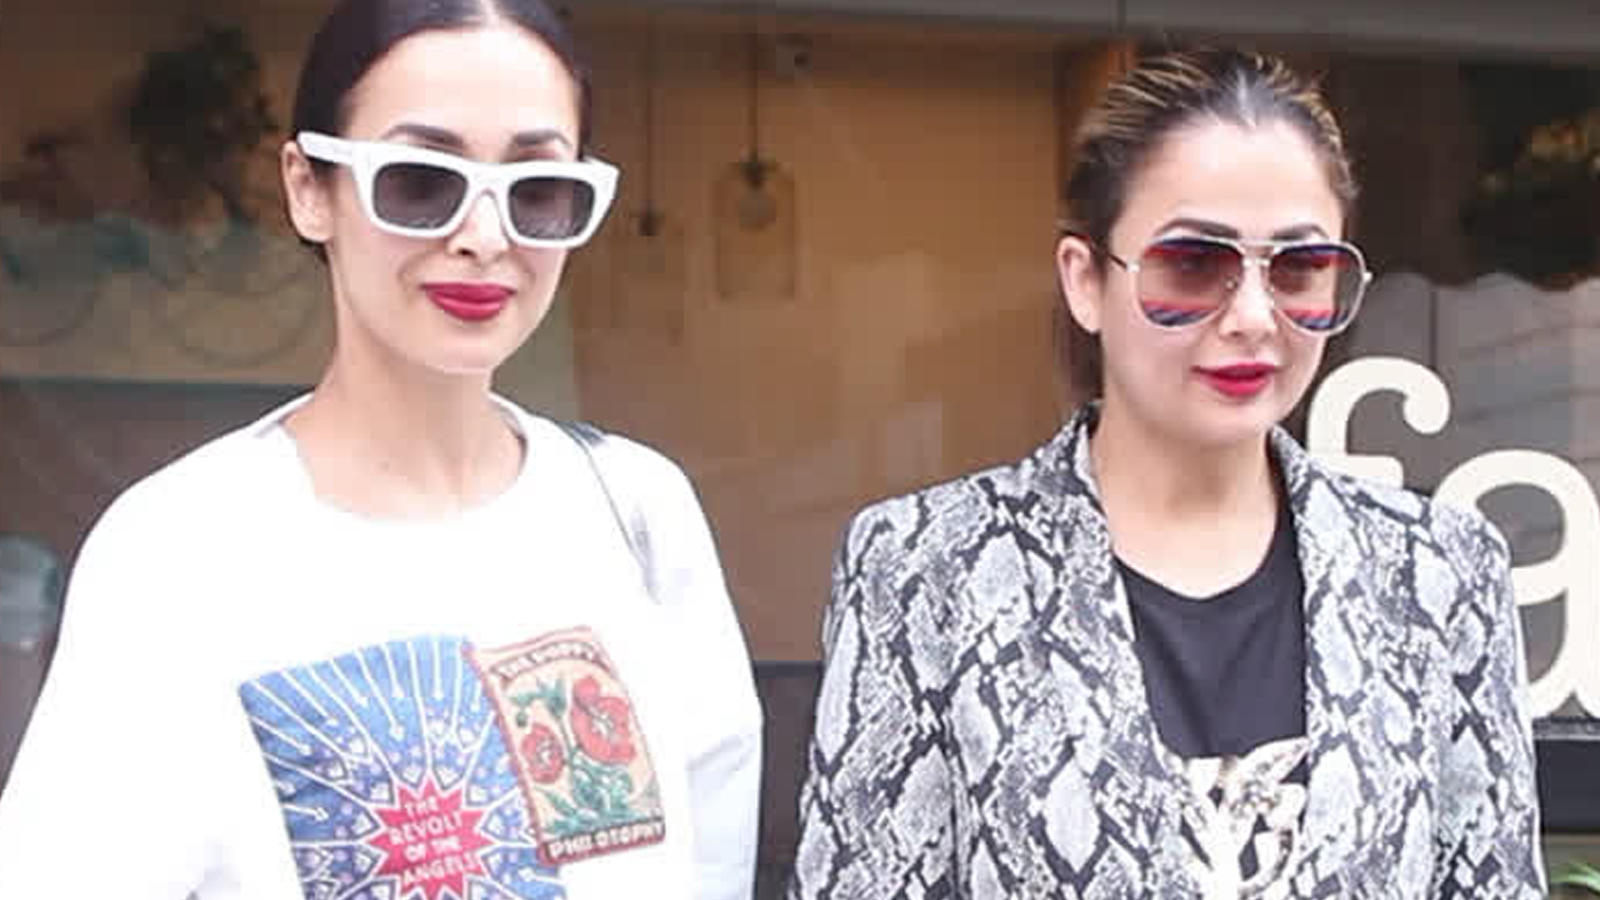 malaika-arora-amrita-arora-step-out-in-style-for-a-lunch-date